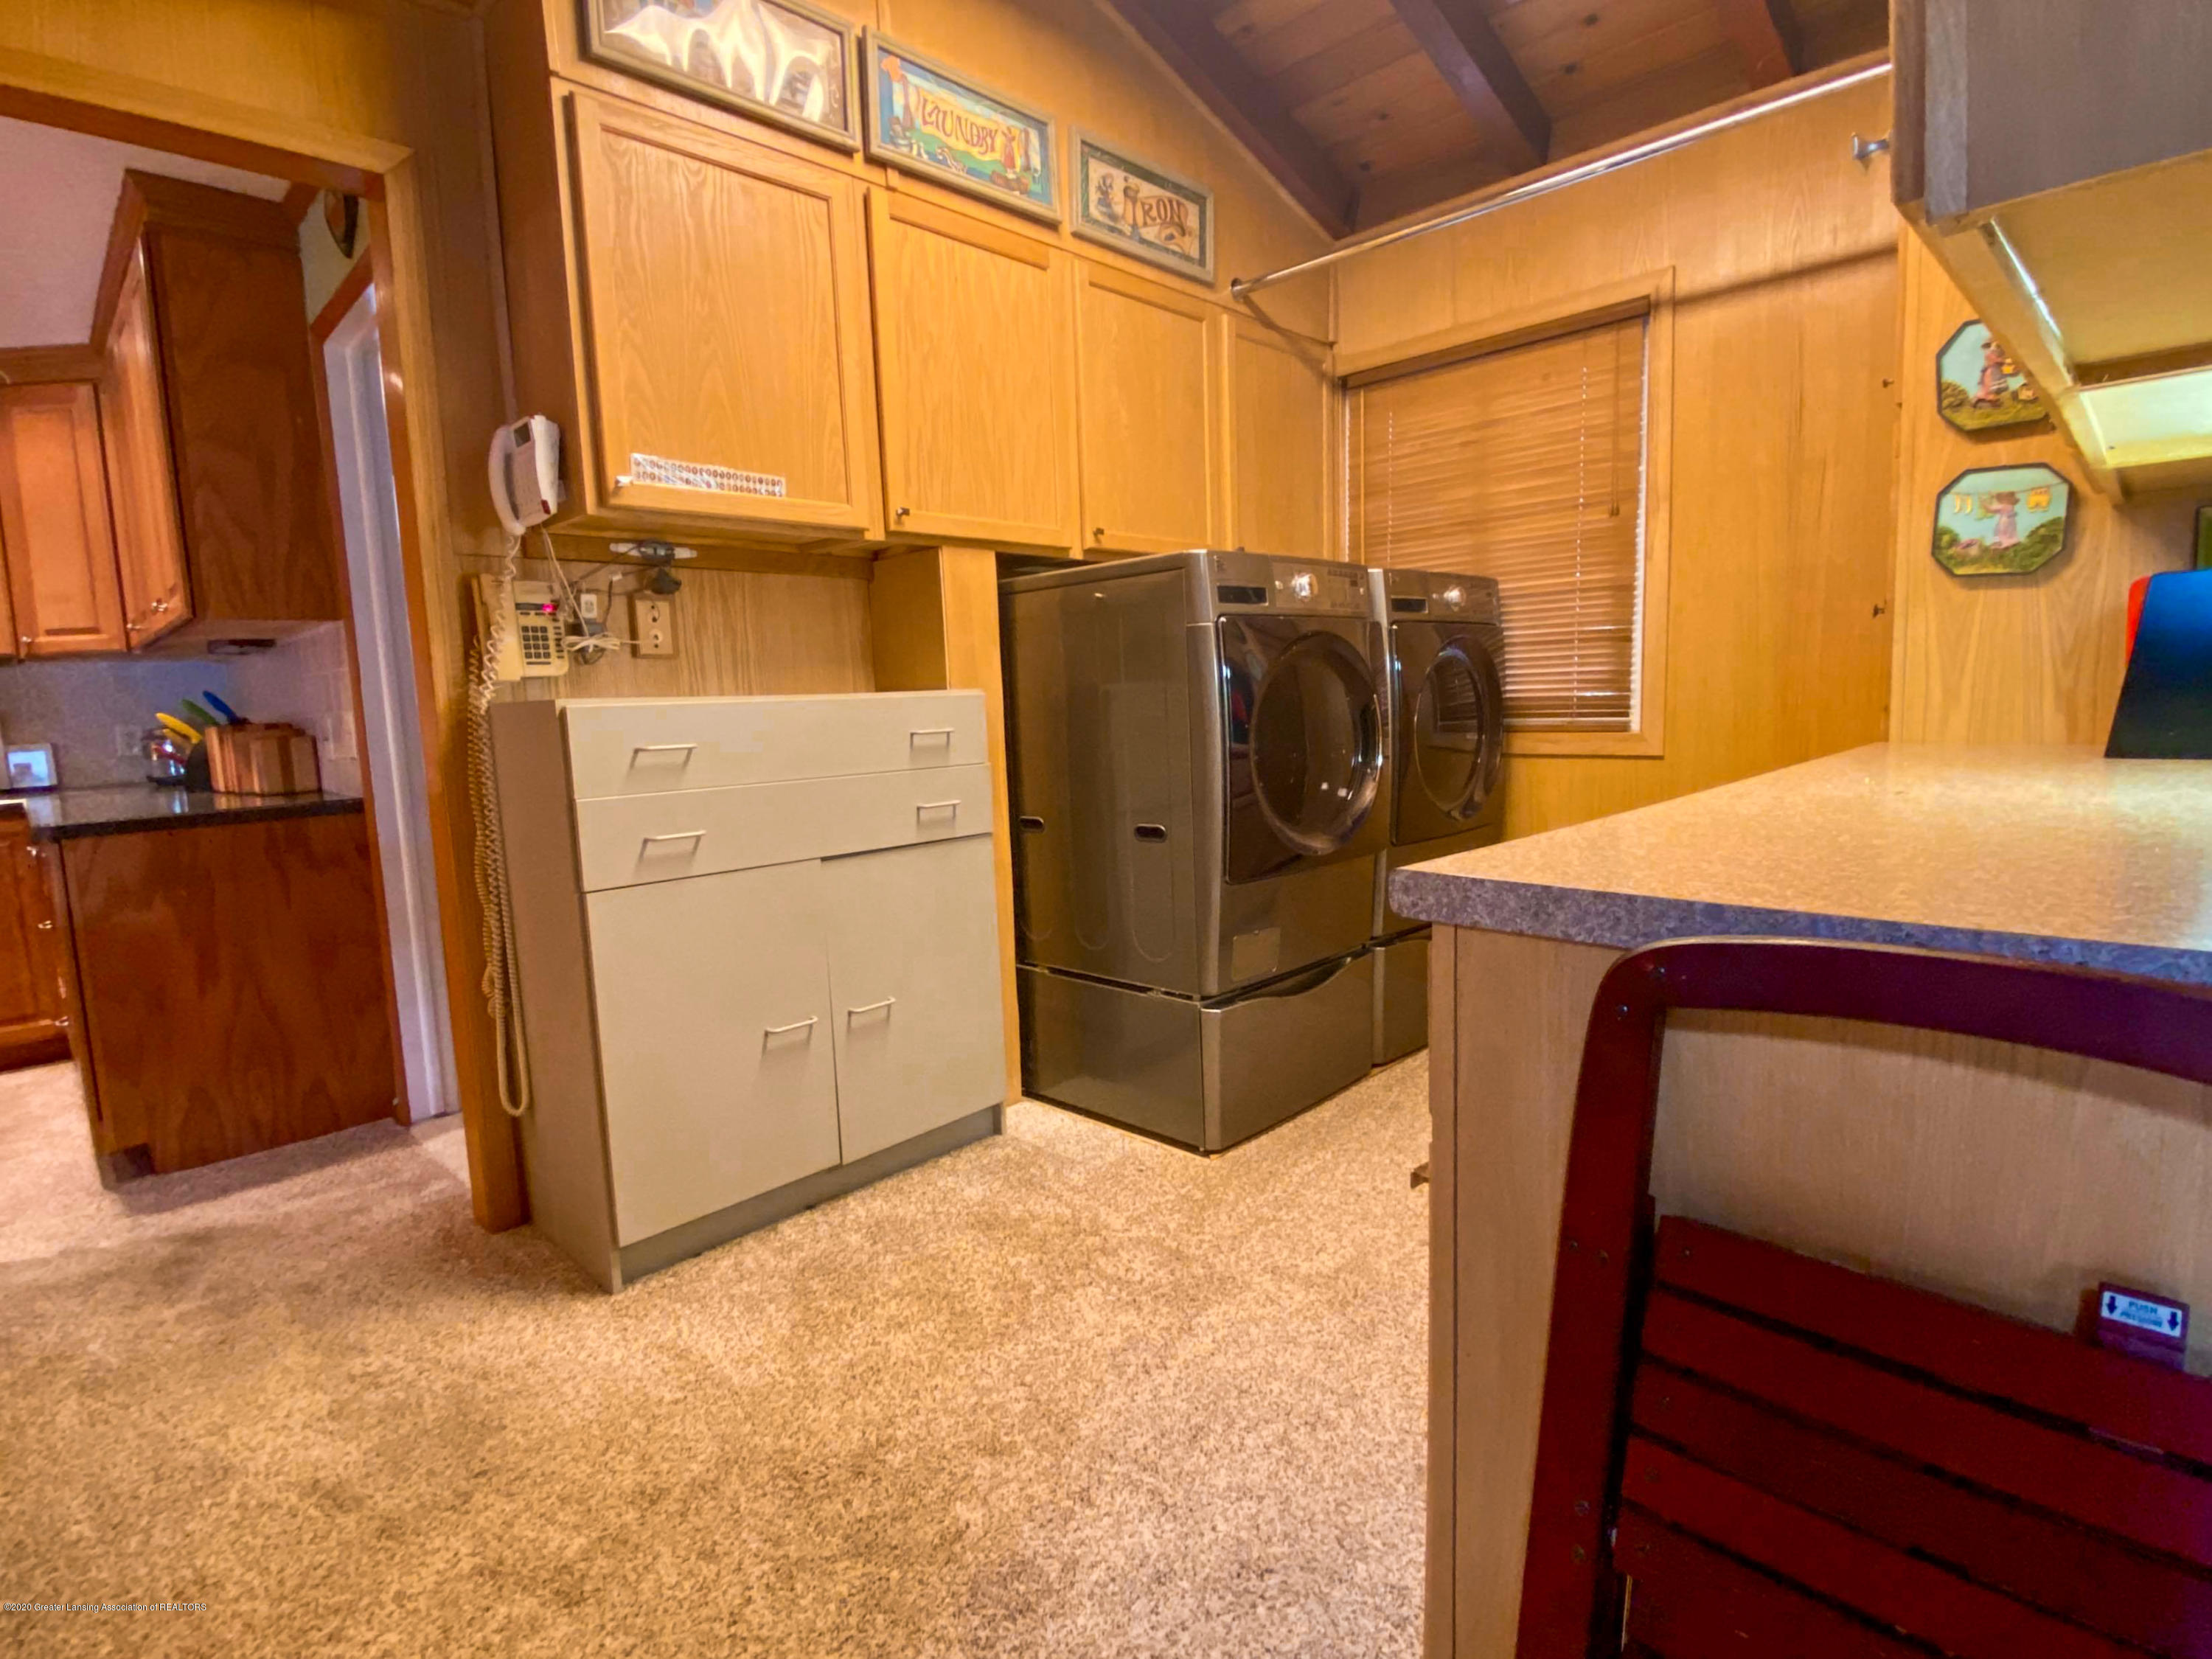 2609 Heights Ave - Laundry Room - 11